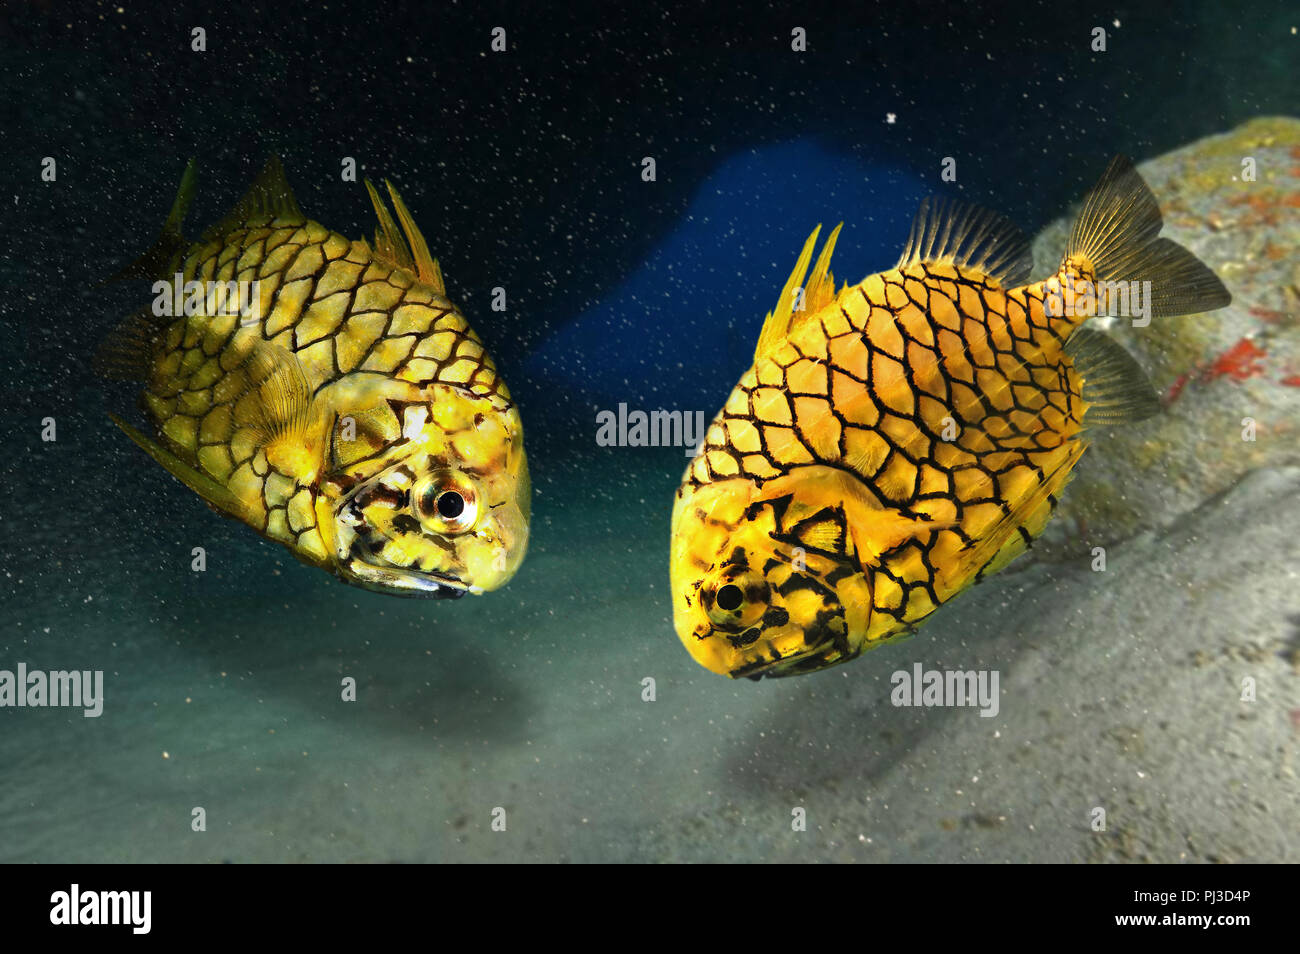 Pineapplefish, Cleidopus gloriamaris, inside underwater cave. Two fish in cofrontation. Note first dorsal fin spines raised. The pineapplefish is a - Stock Image